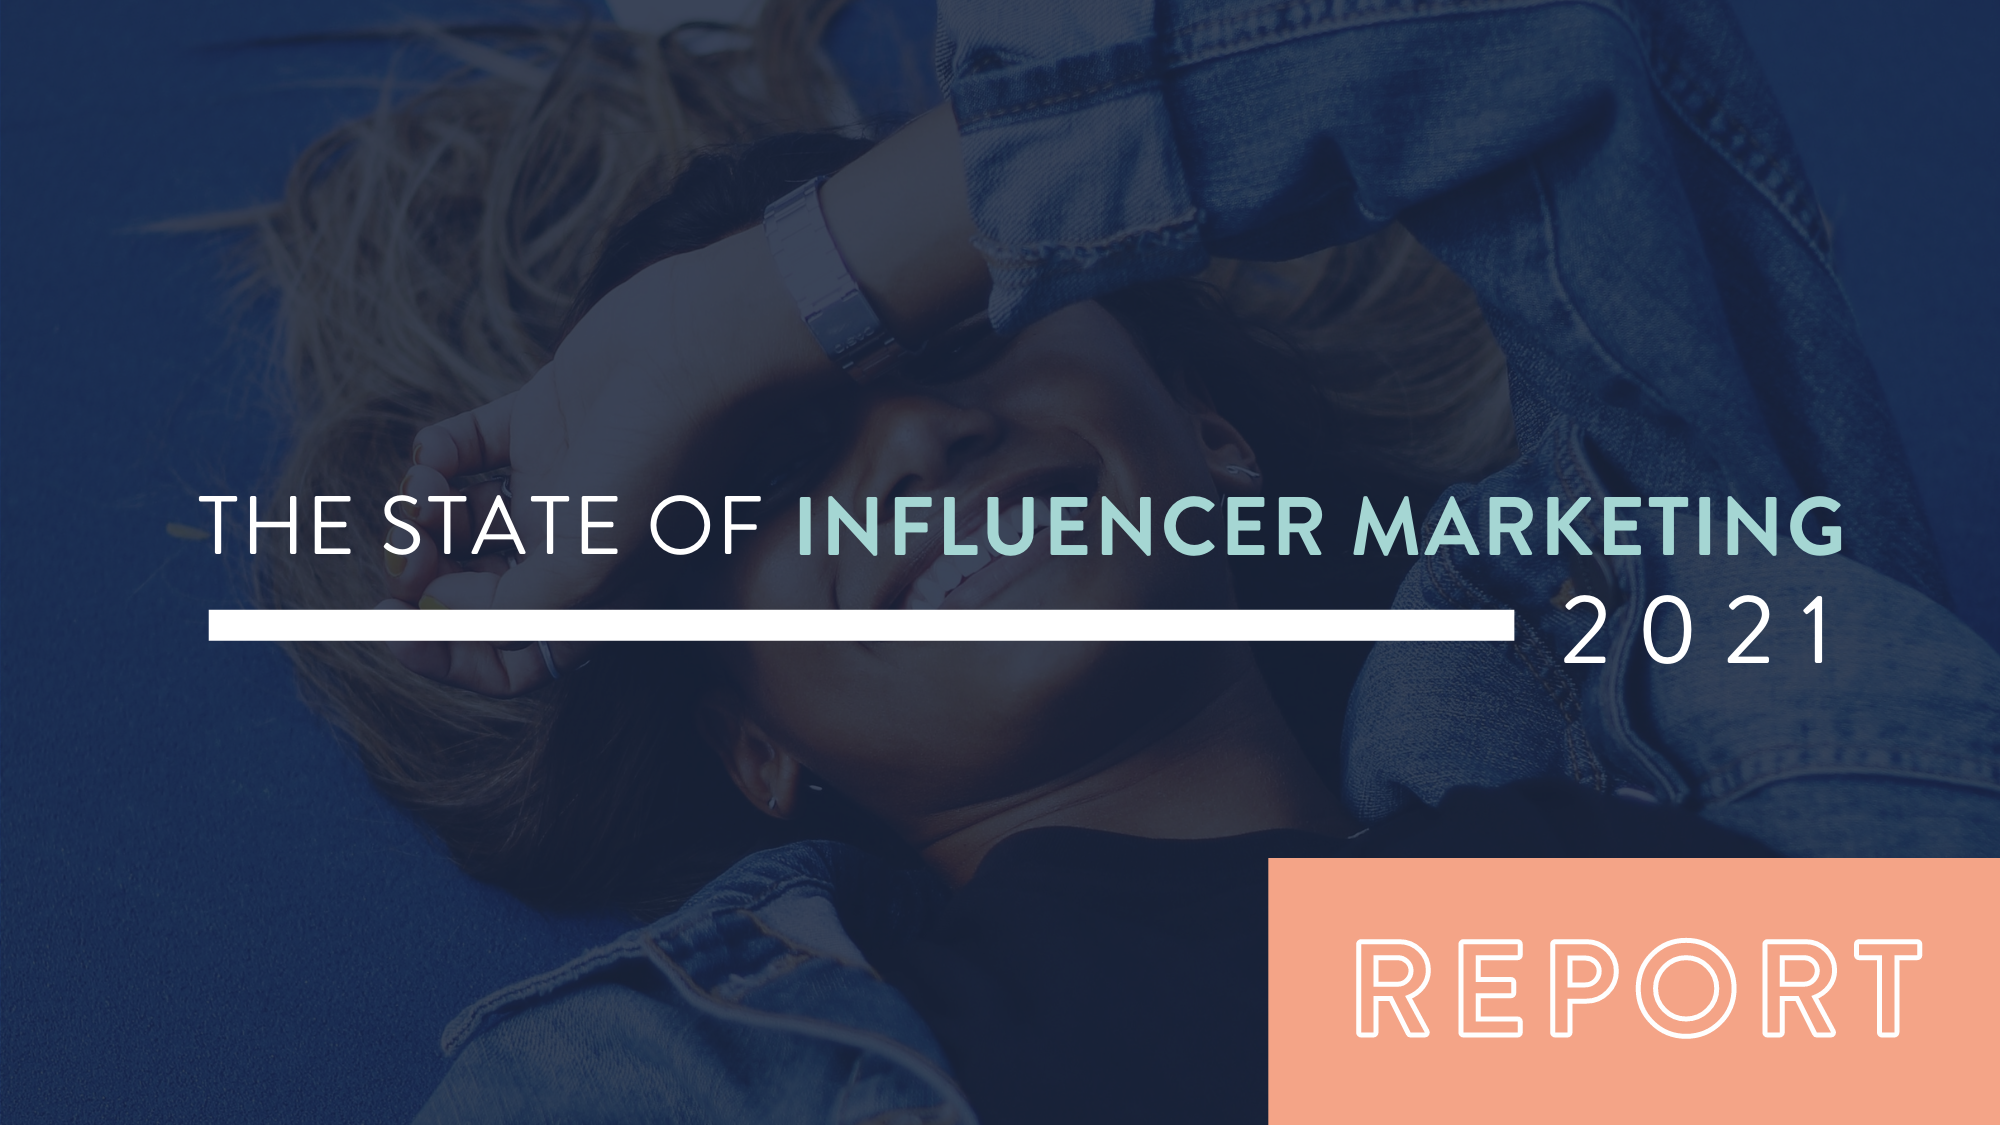 Report - State of Influencer Marketing 2021